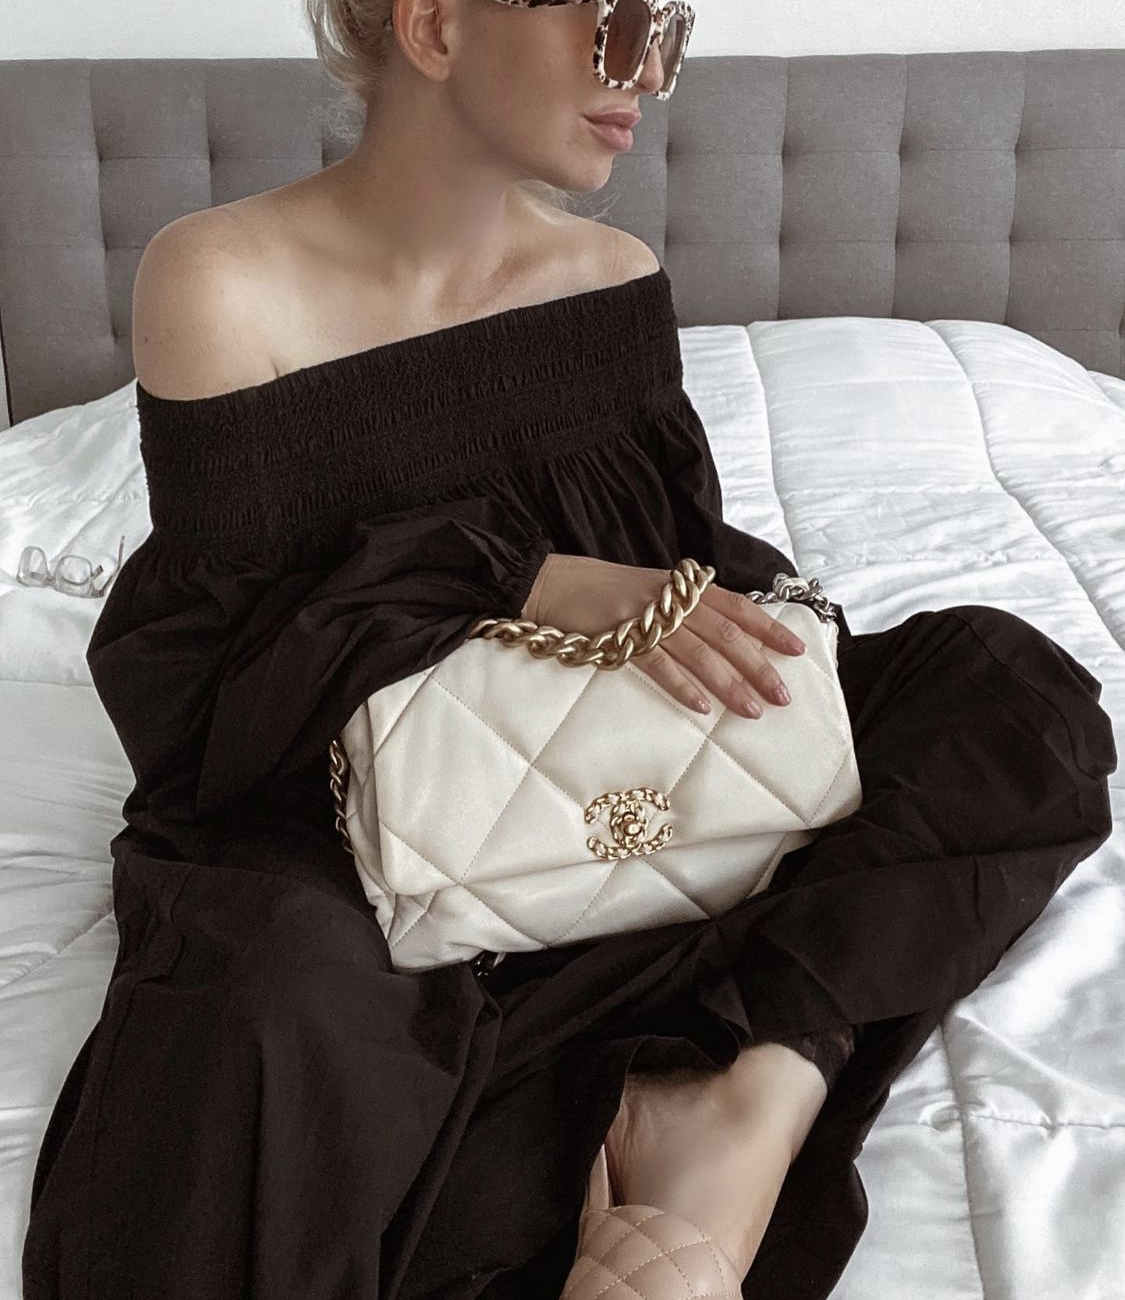 chanel 19 flap bag in white color sabina lynn